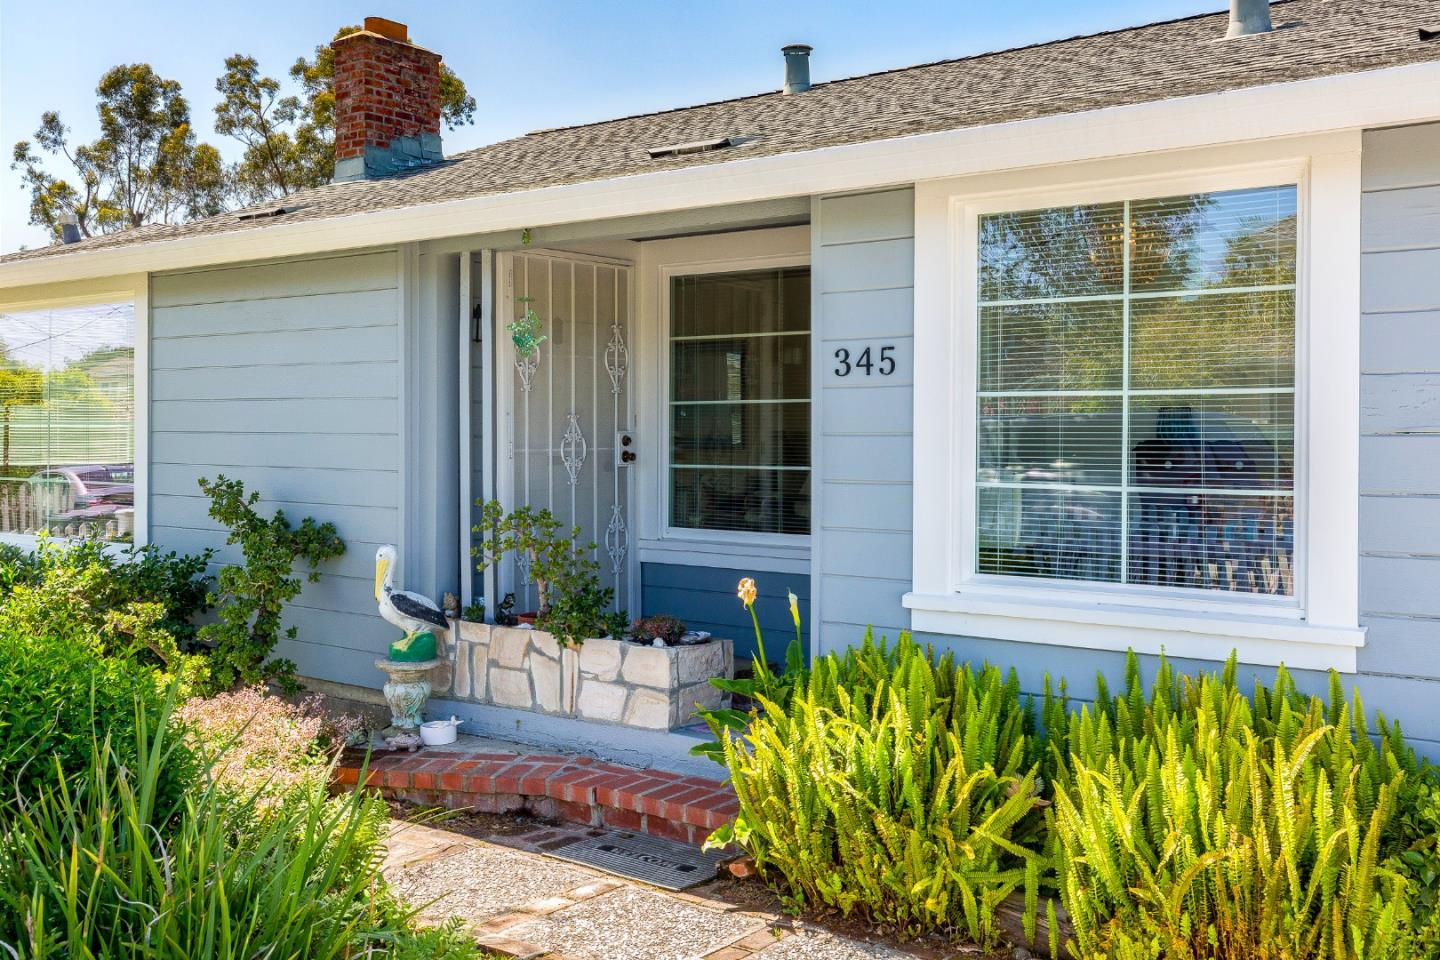 Additional photo for property listing at 345 14th Ave  SANTA CRUZ, CALIFORNIA 95062